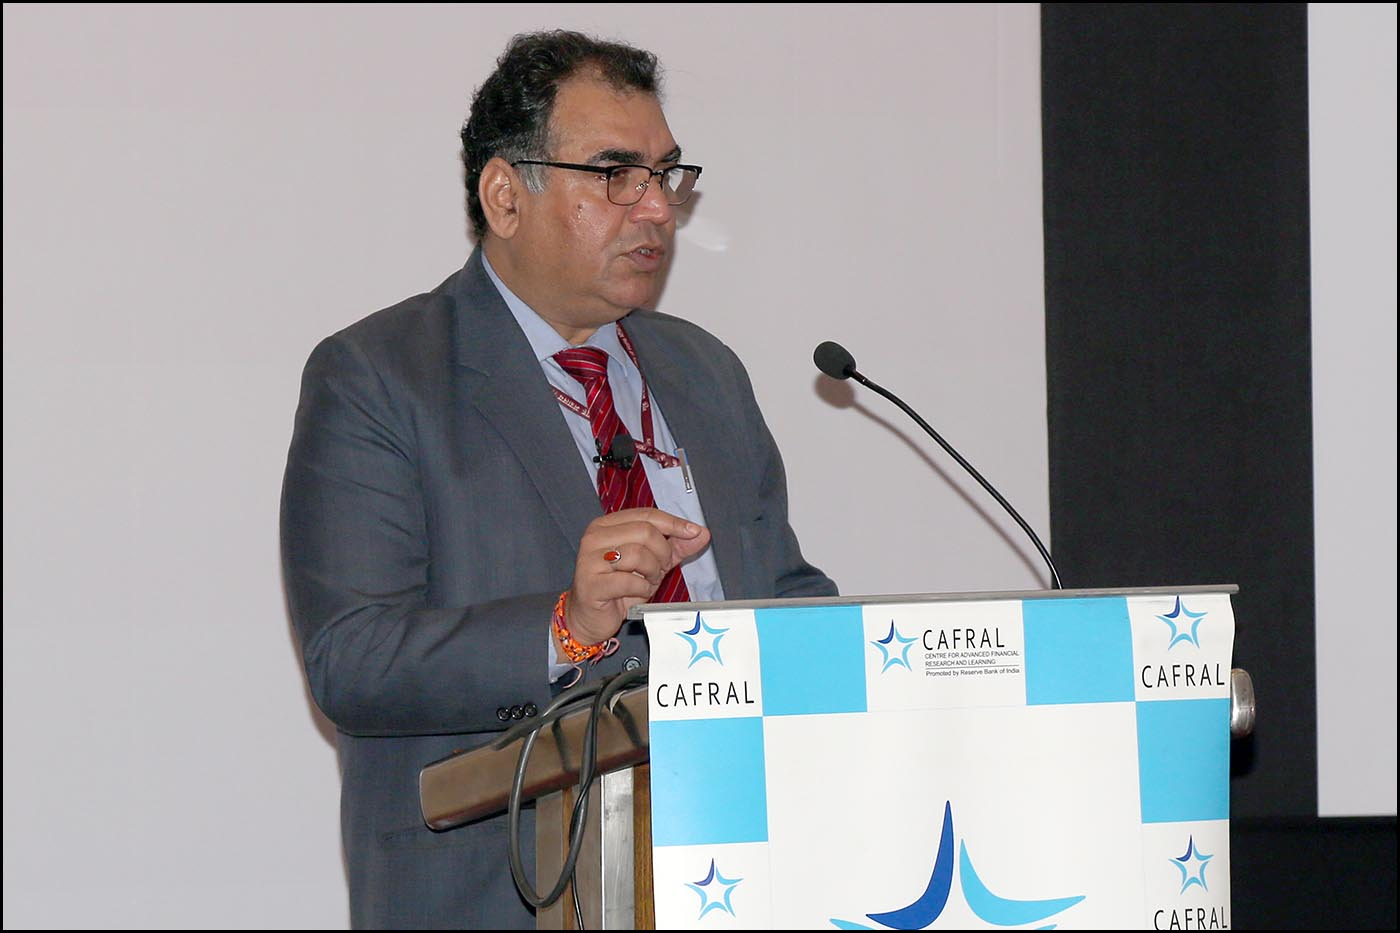 Pankaj Kumar Mishra, IRS, Director, Financial Intelligence Unit –India